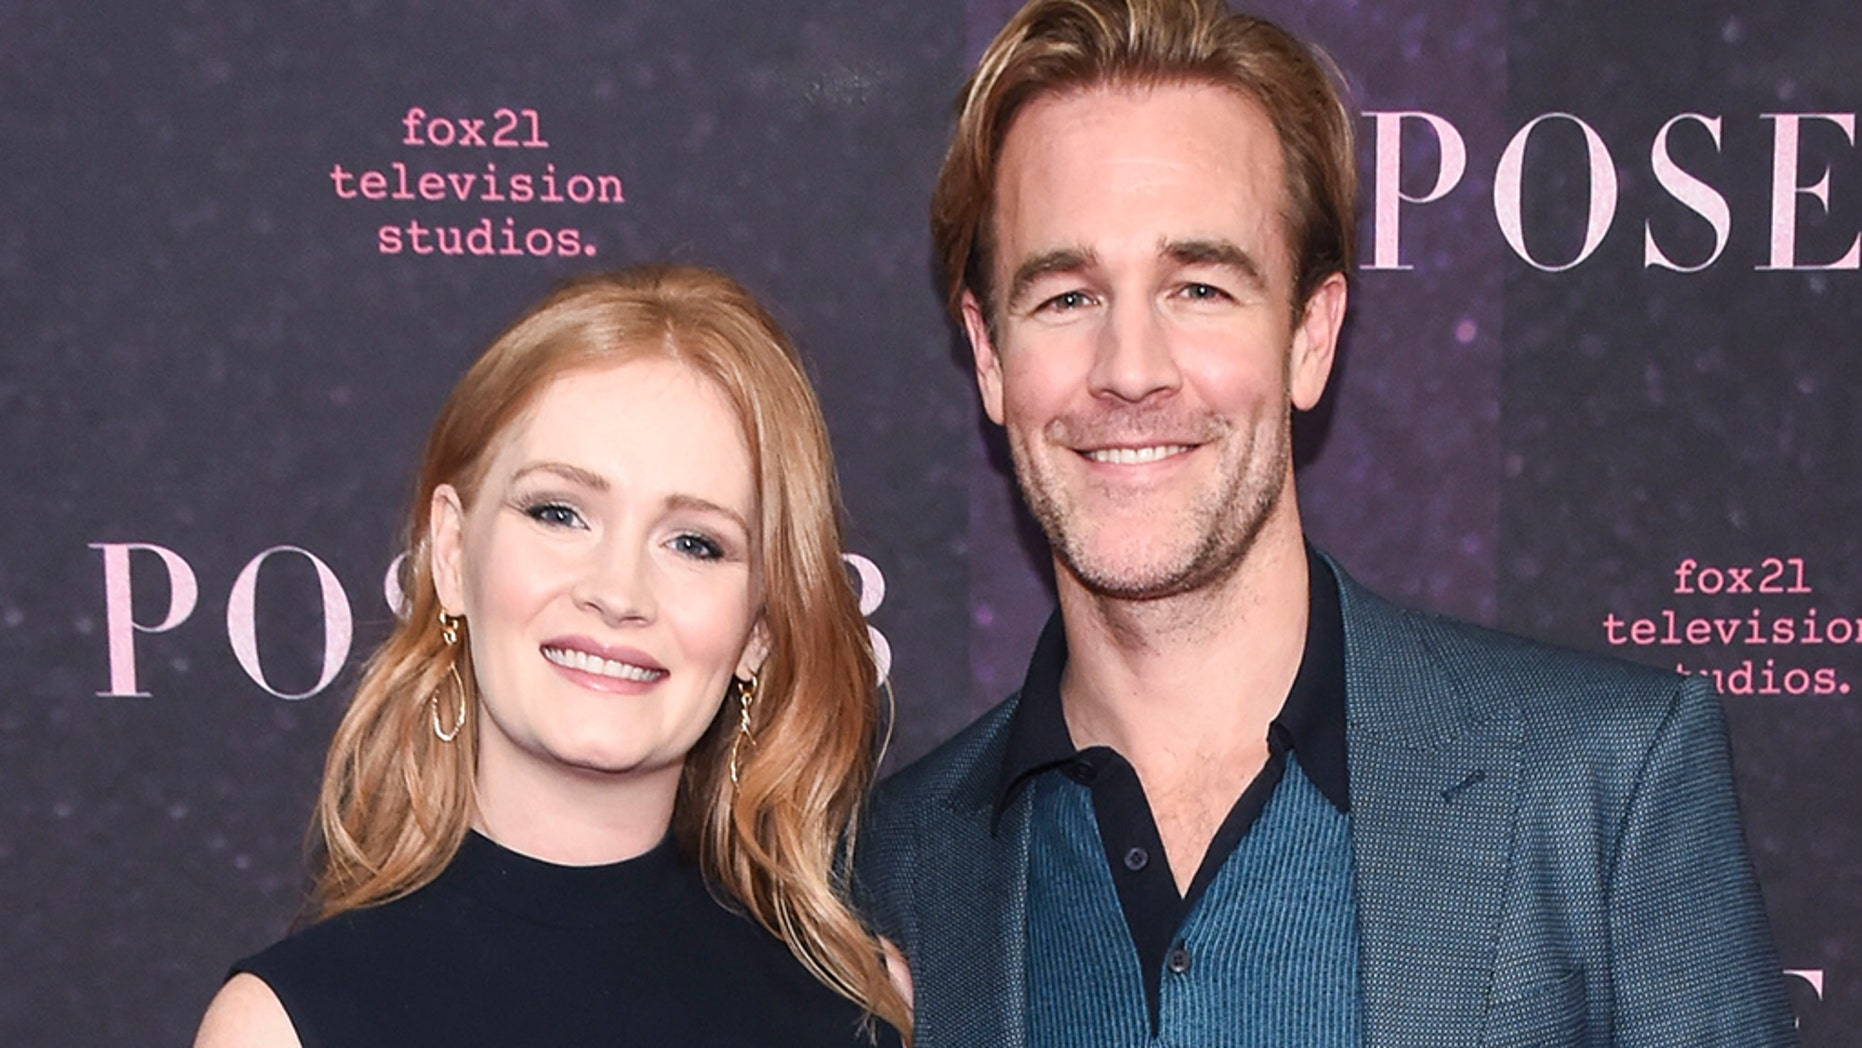 James Van Der Beek opened up about his wife's 3 miscarriages on social media Monday.